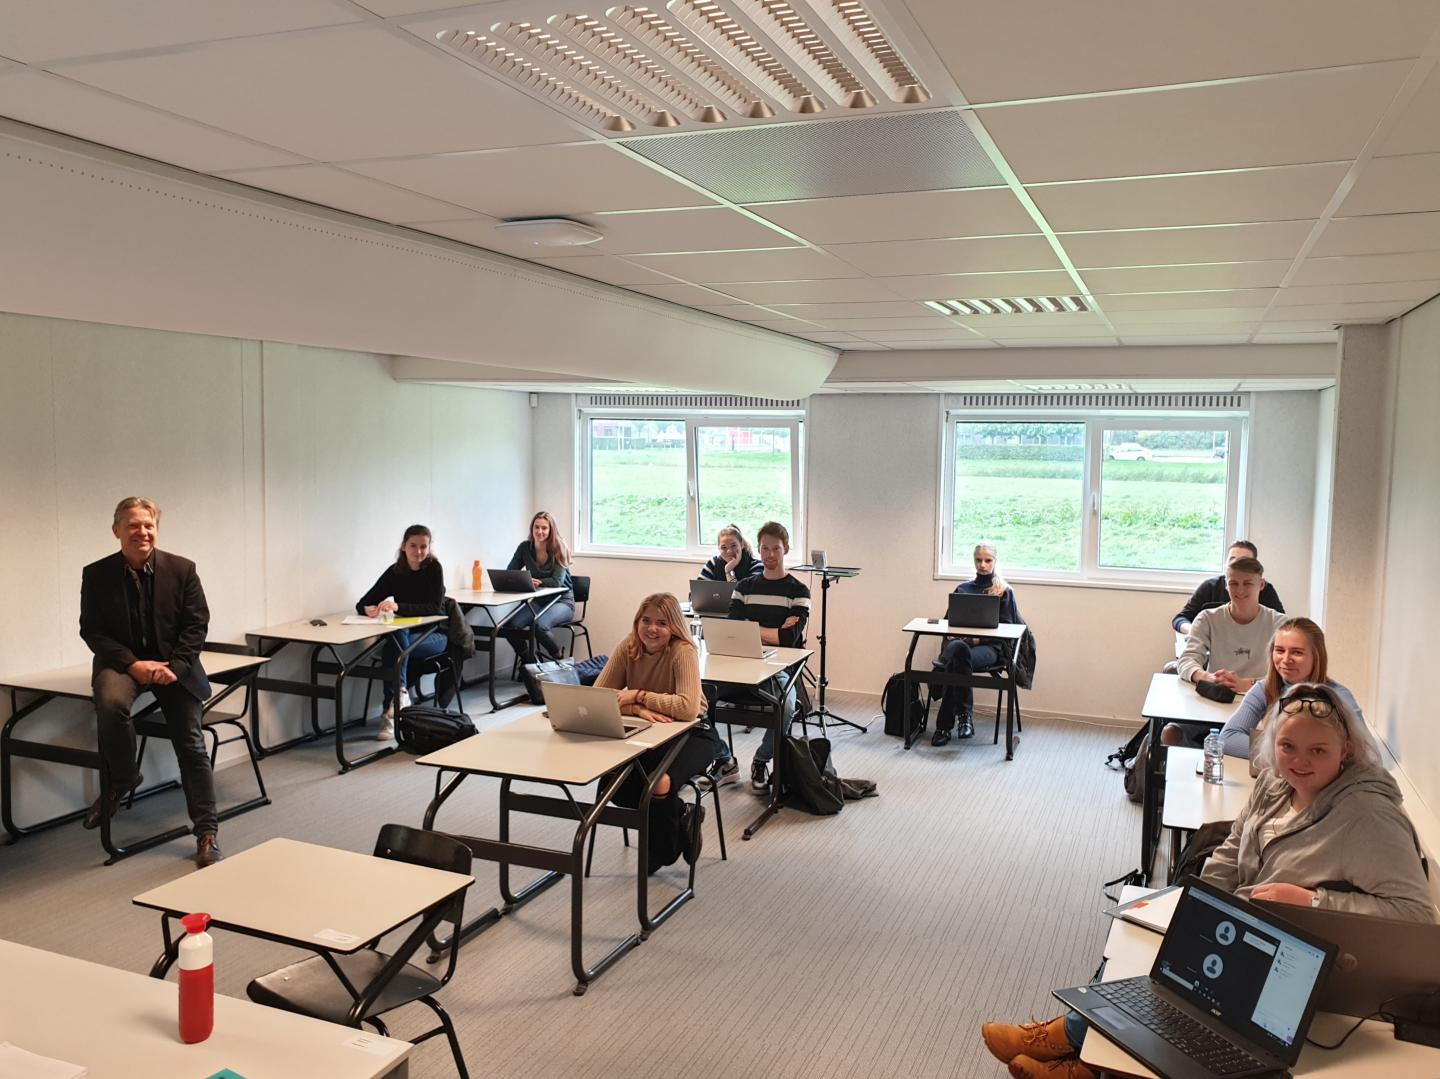 Does Classroom Indoor Environmental Quality Affect Teaching and Learning?